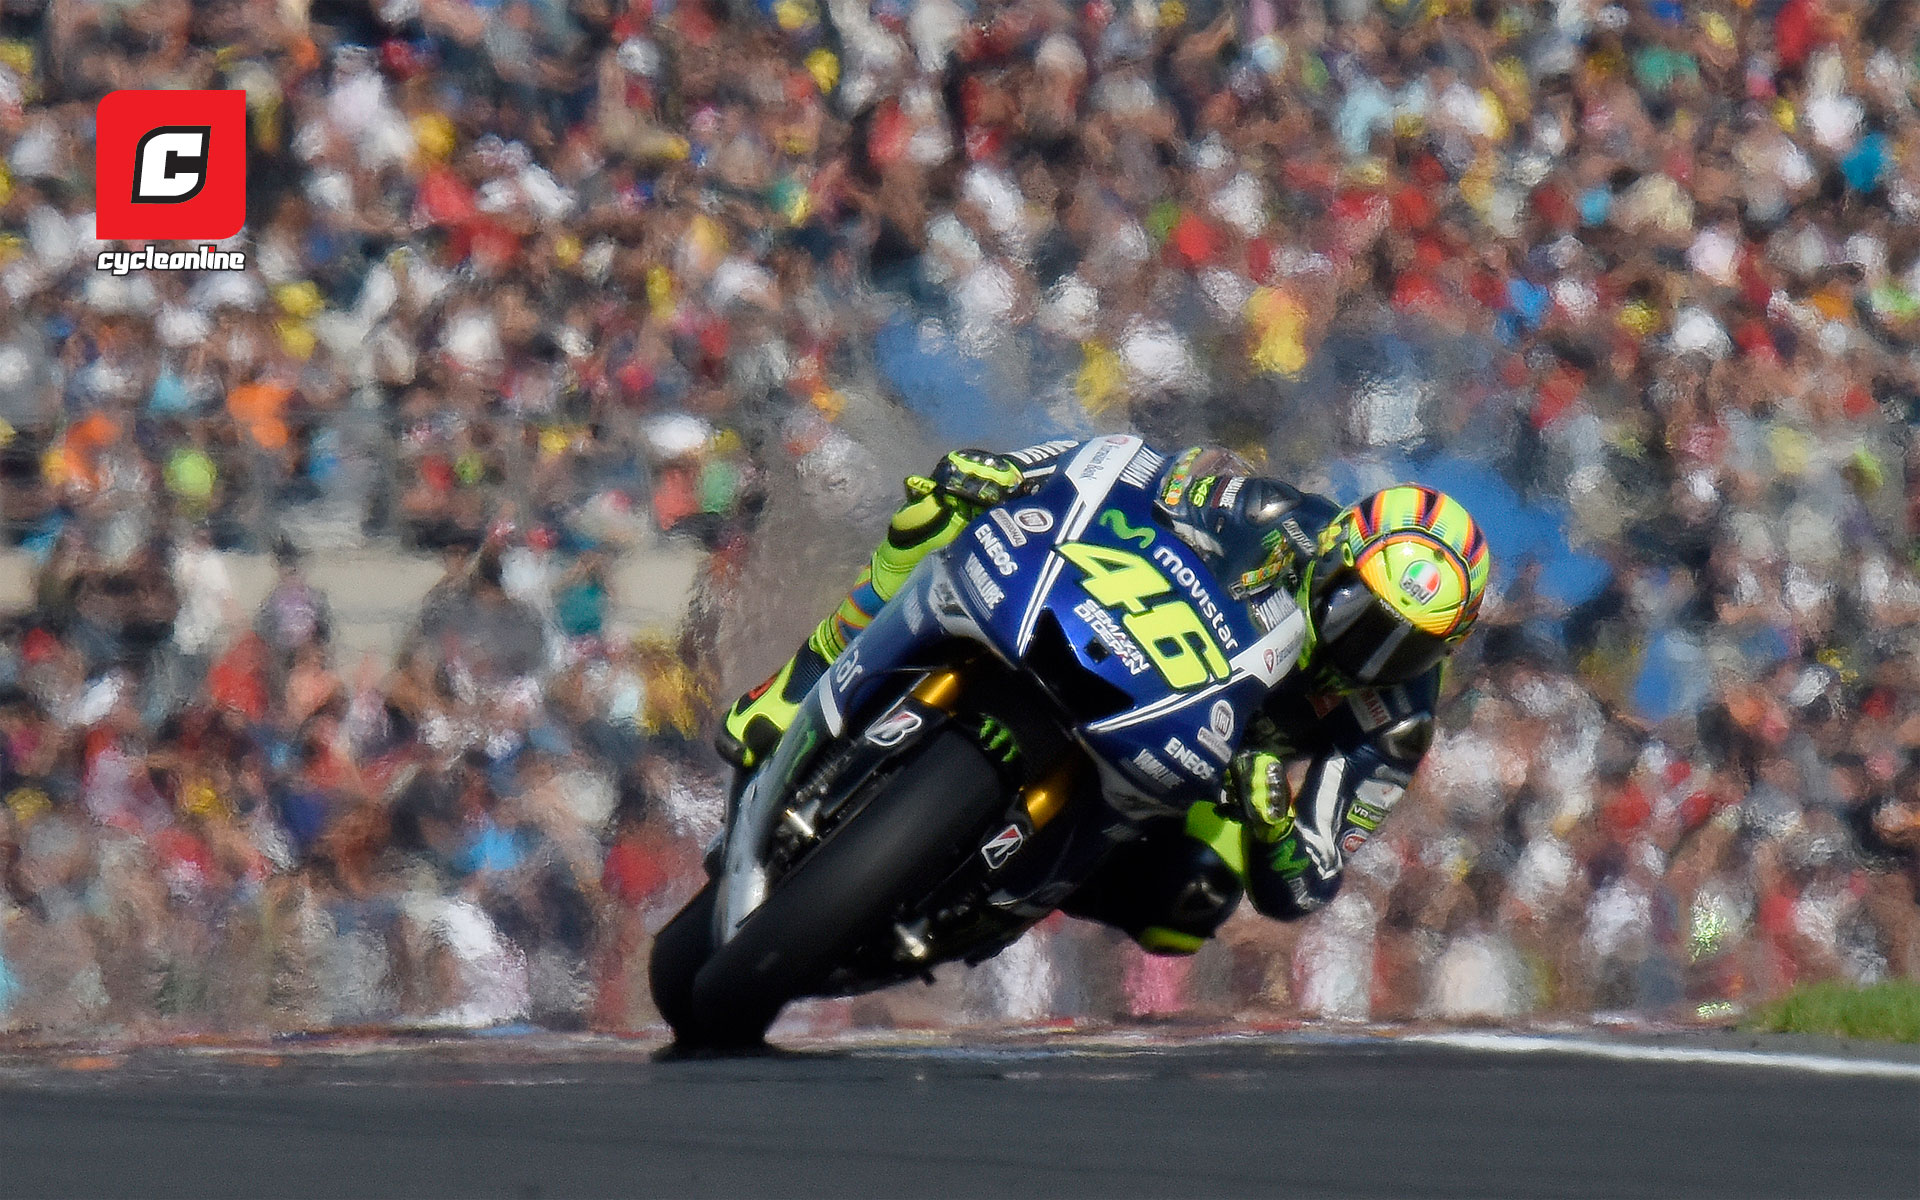 Image Result For Wallpaper Motogp Valentino Rossi